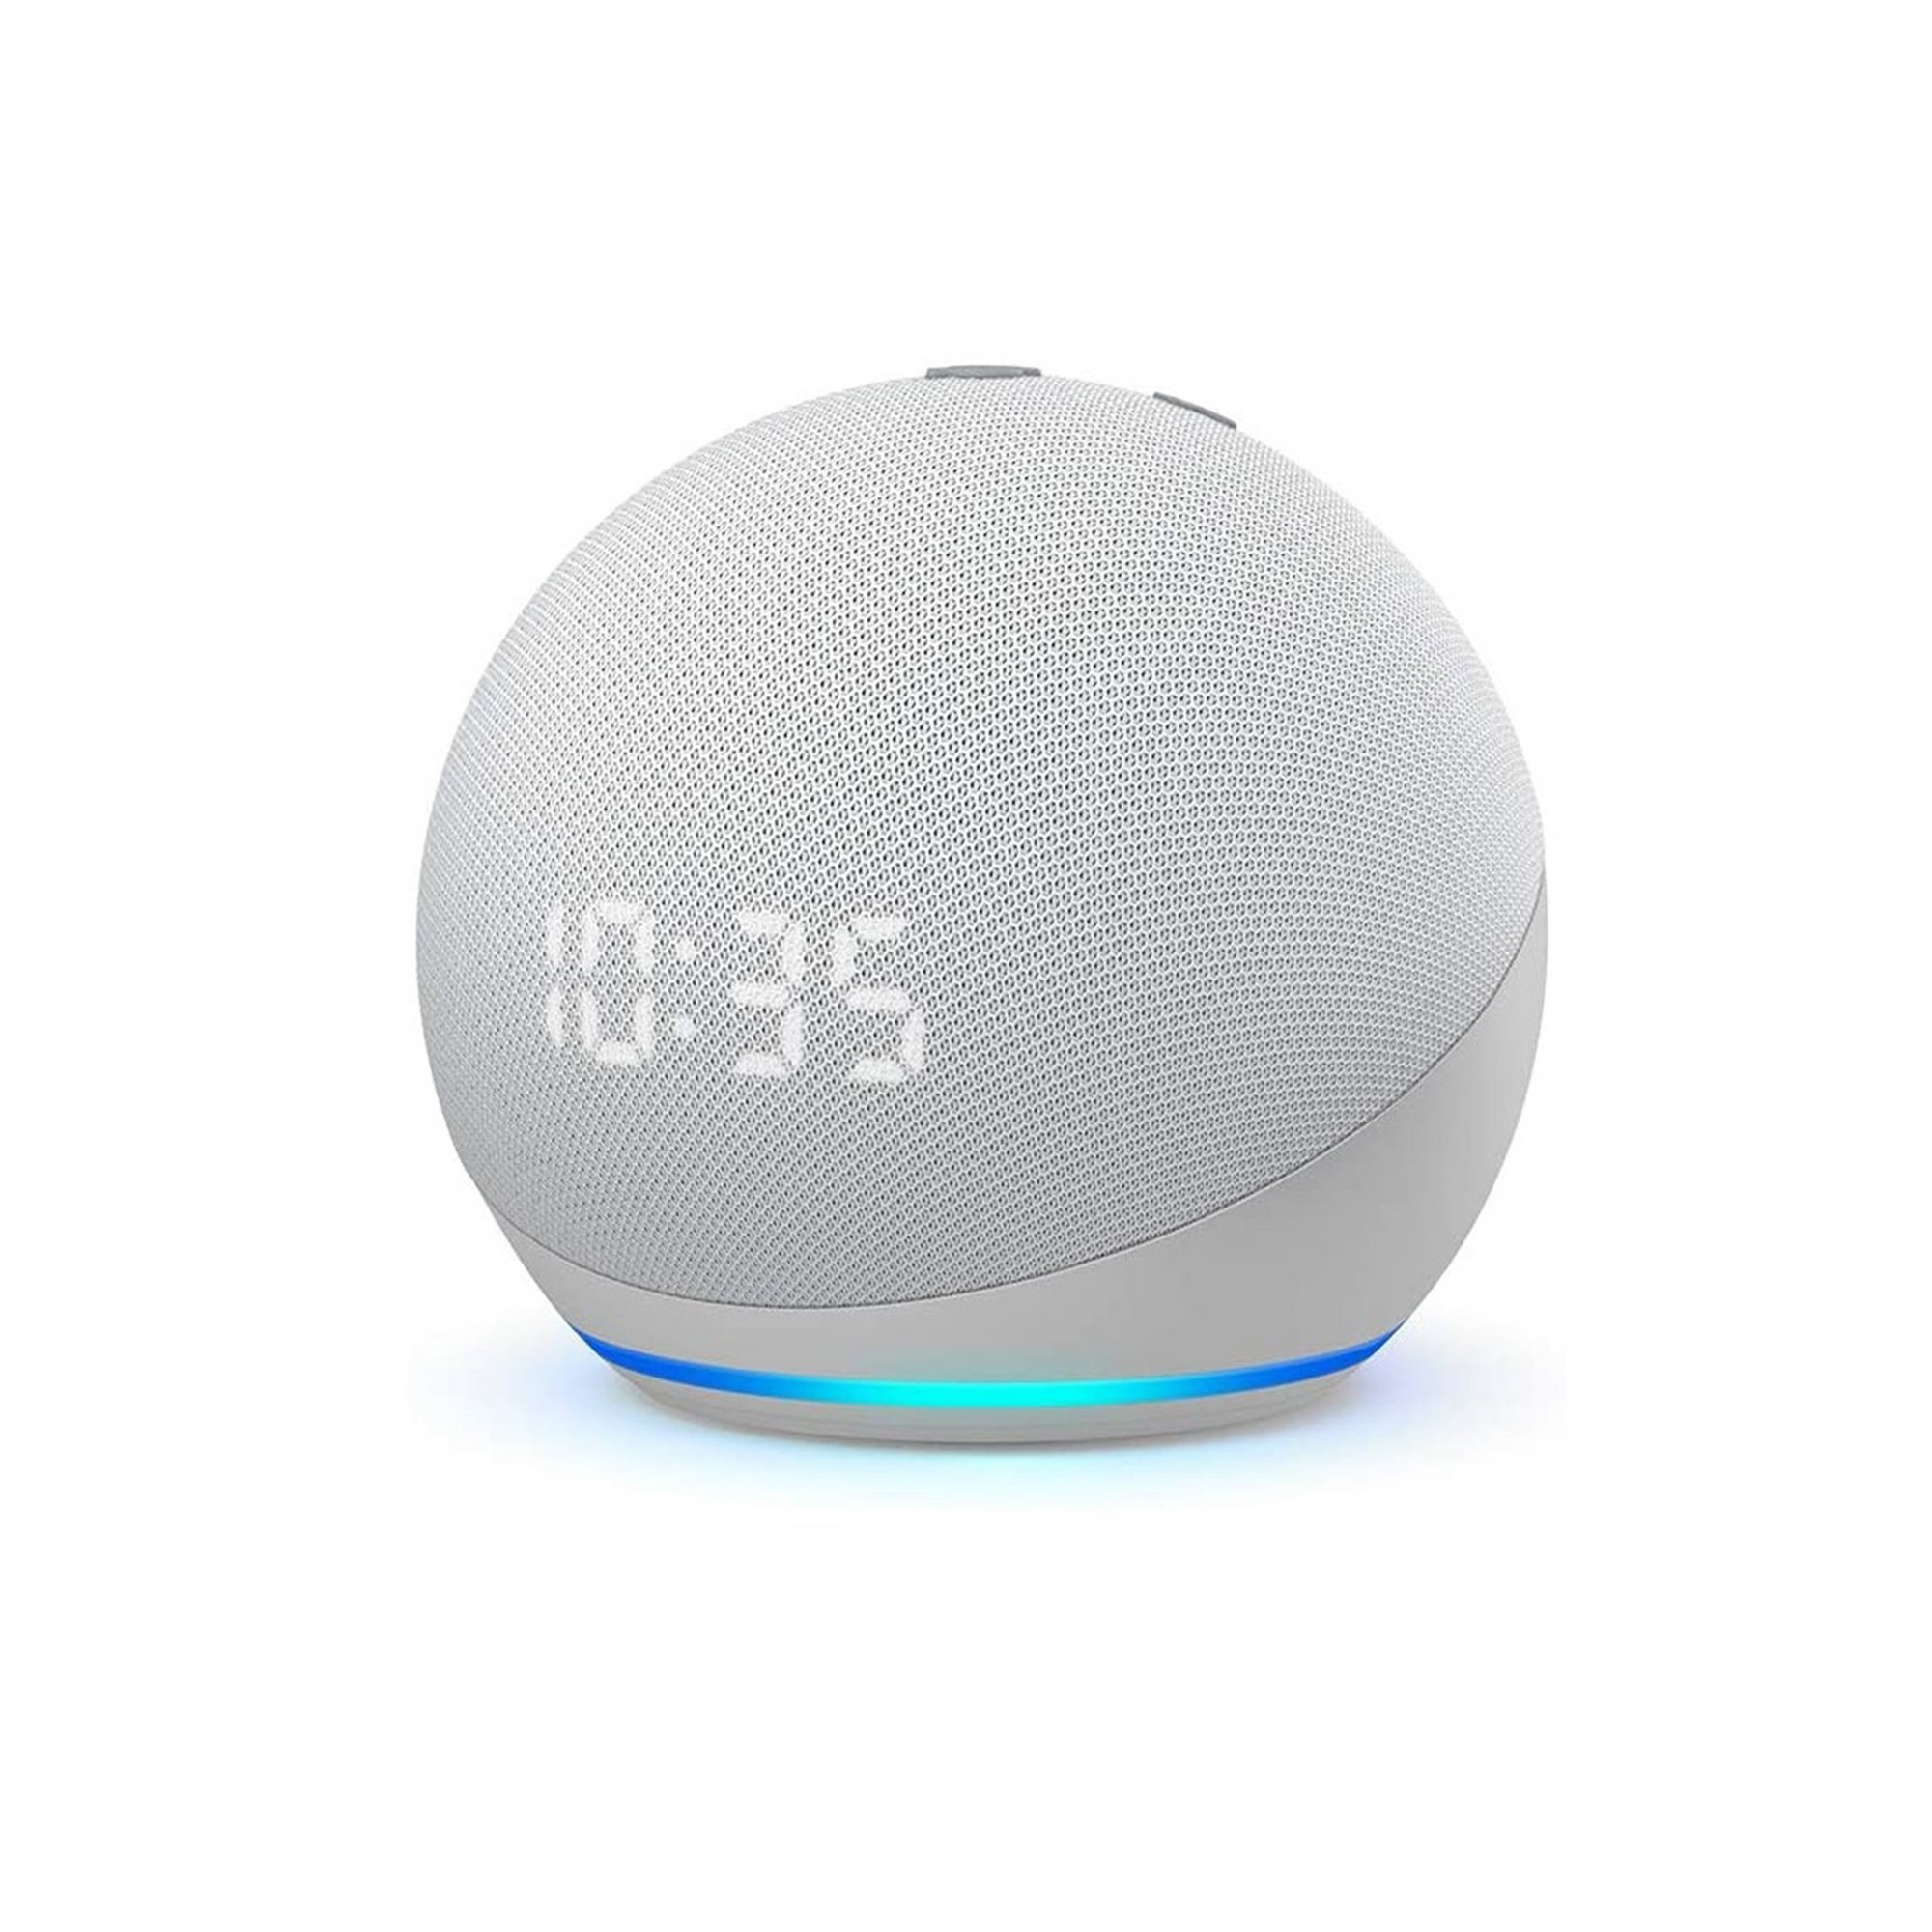 Image of Amazon All-new Echo Dot (4th generation) Smart Speaker with Clock...